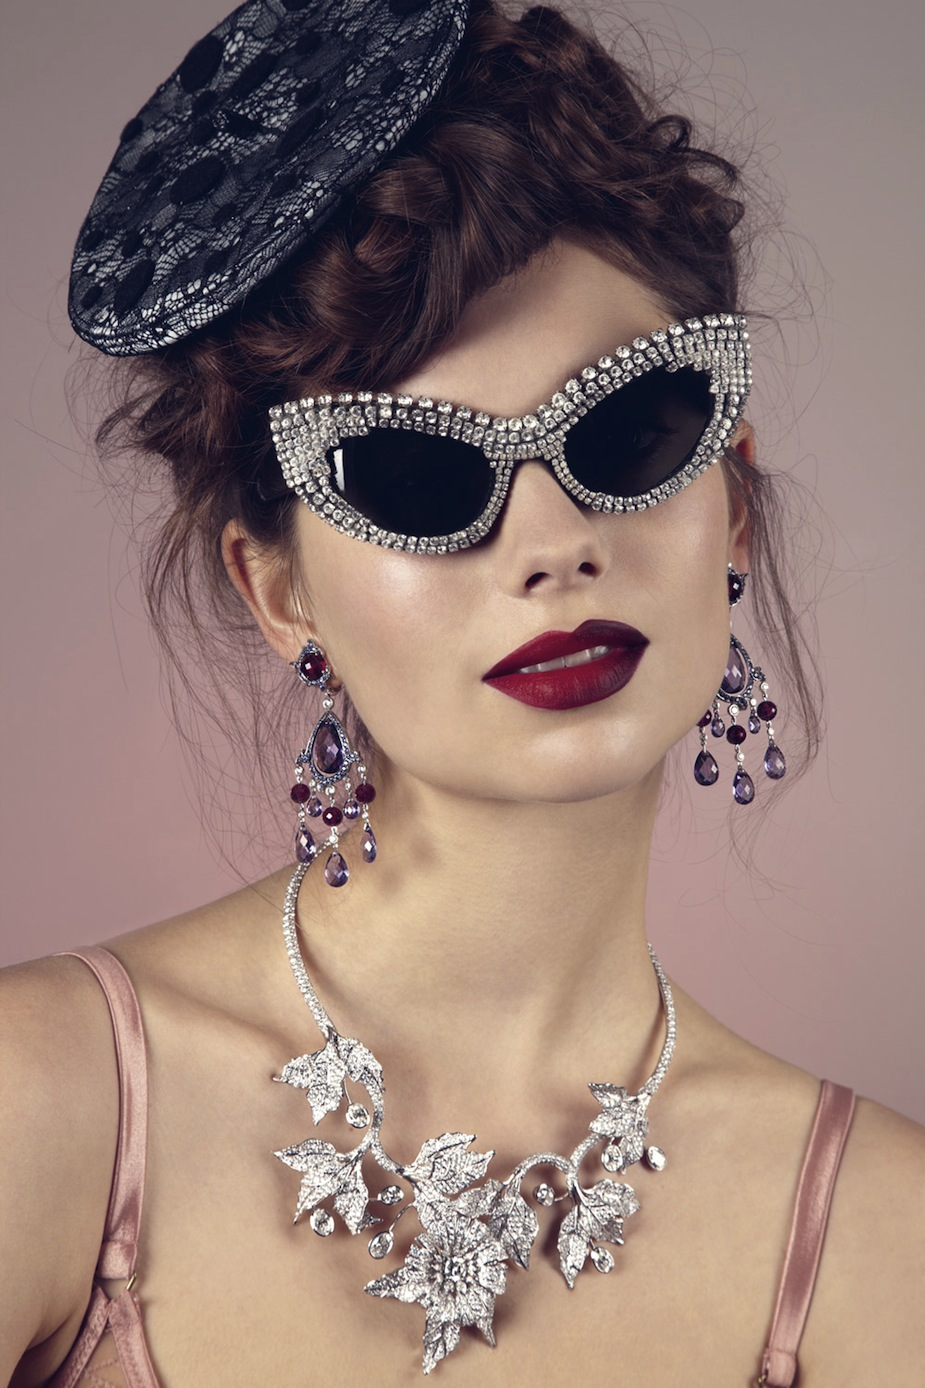 Merle Bergers by Olivia Da Costa (I Always Dreamed Of Being A Princess - Please! #12 Spring 2012) 5.jpg